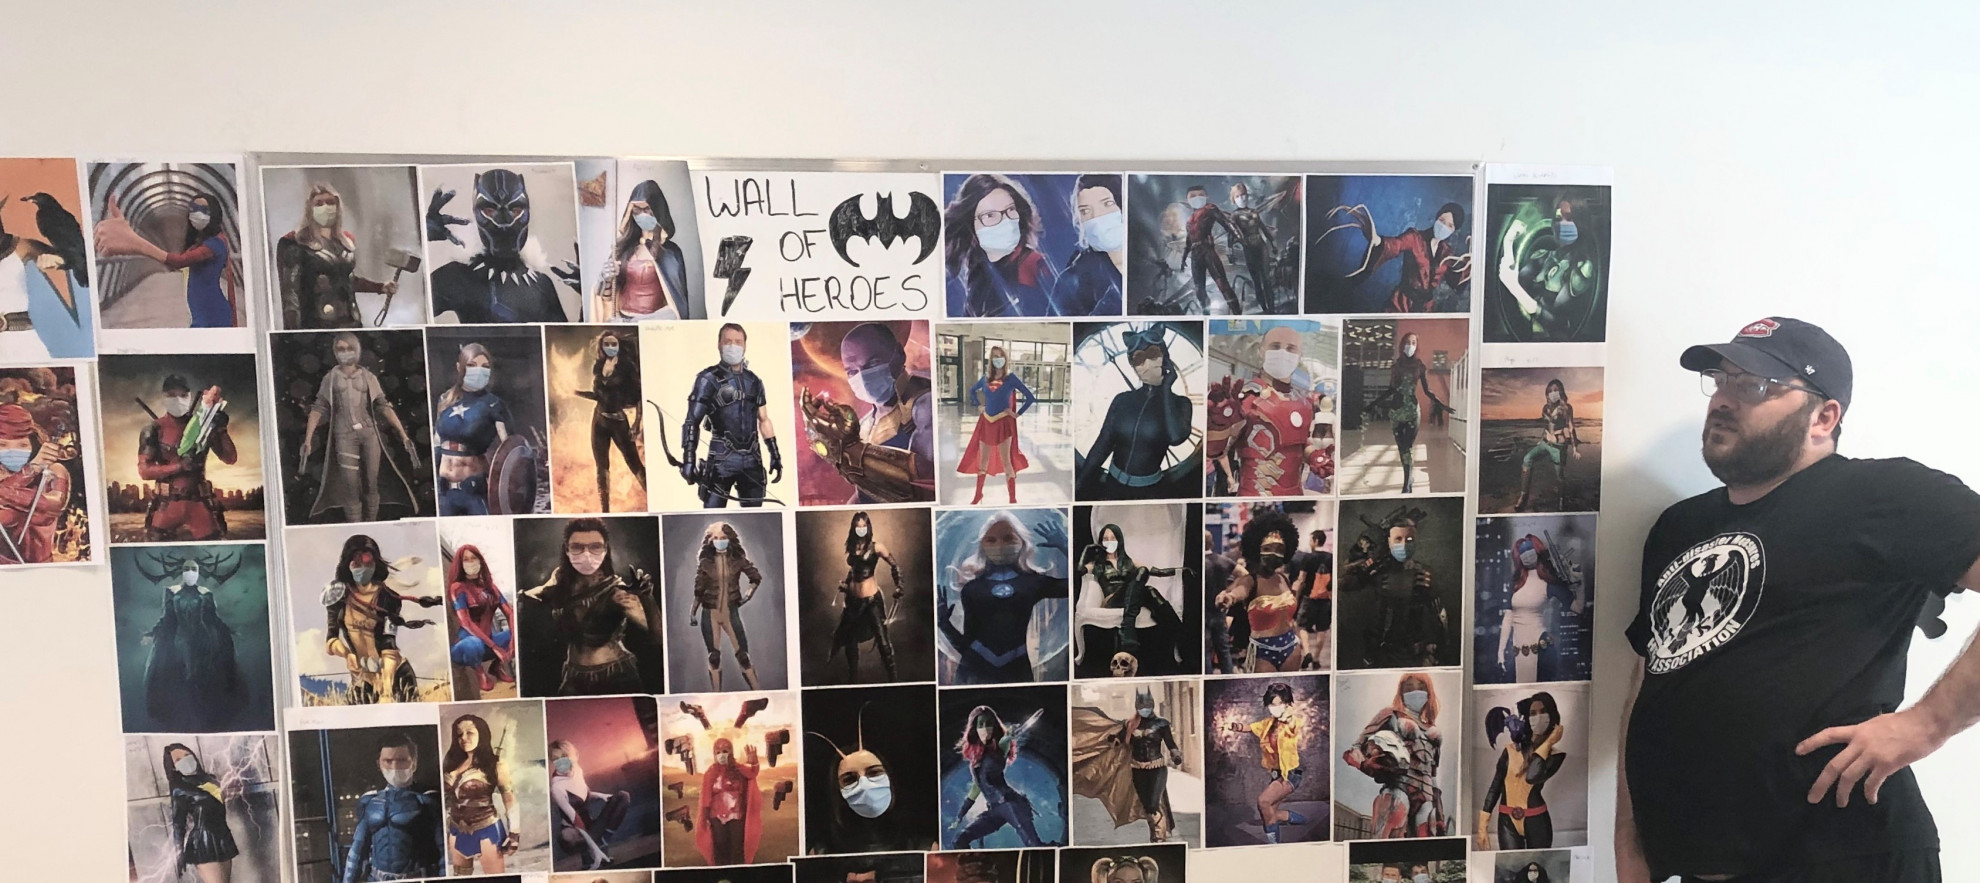 Wall of Heroes Likens CONNECT Employees to Superheroes